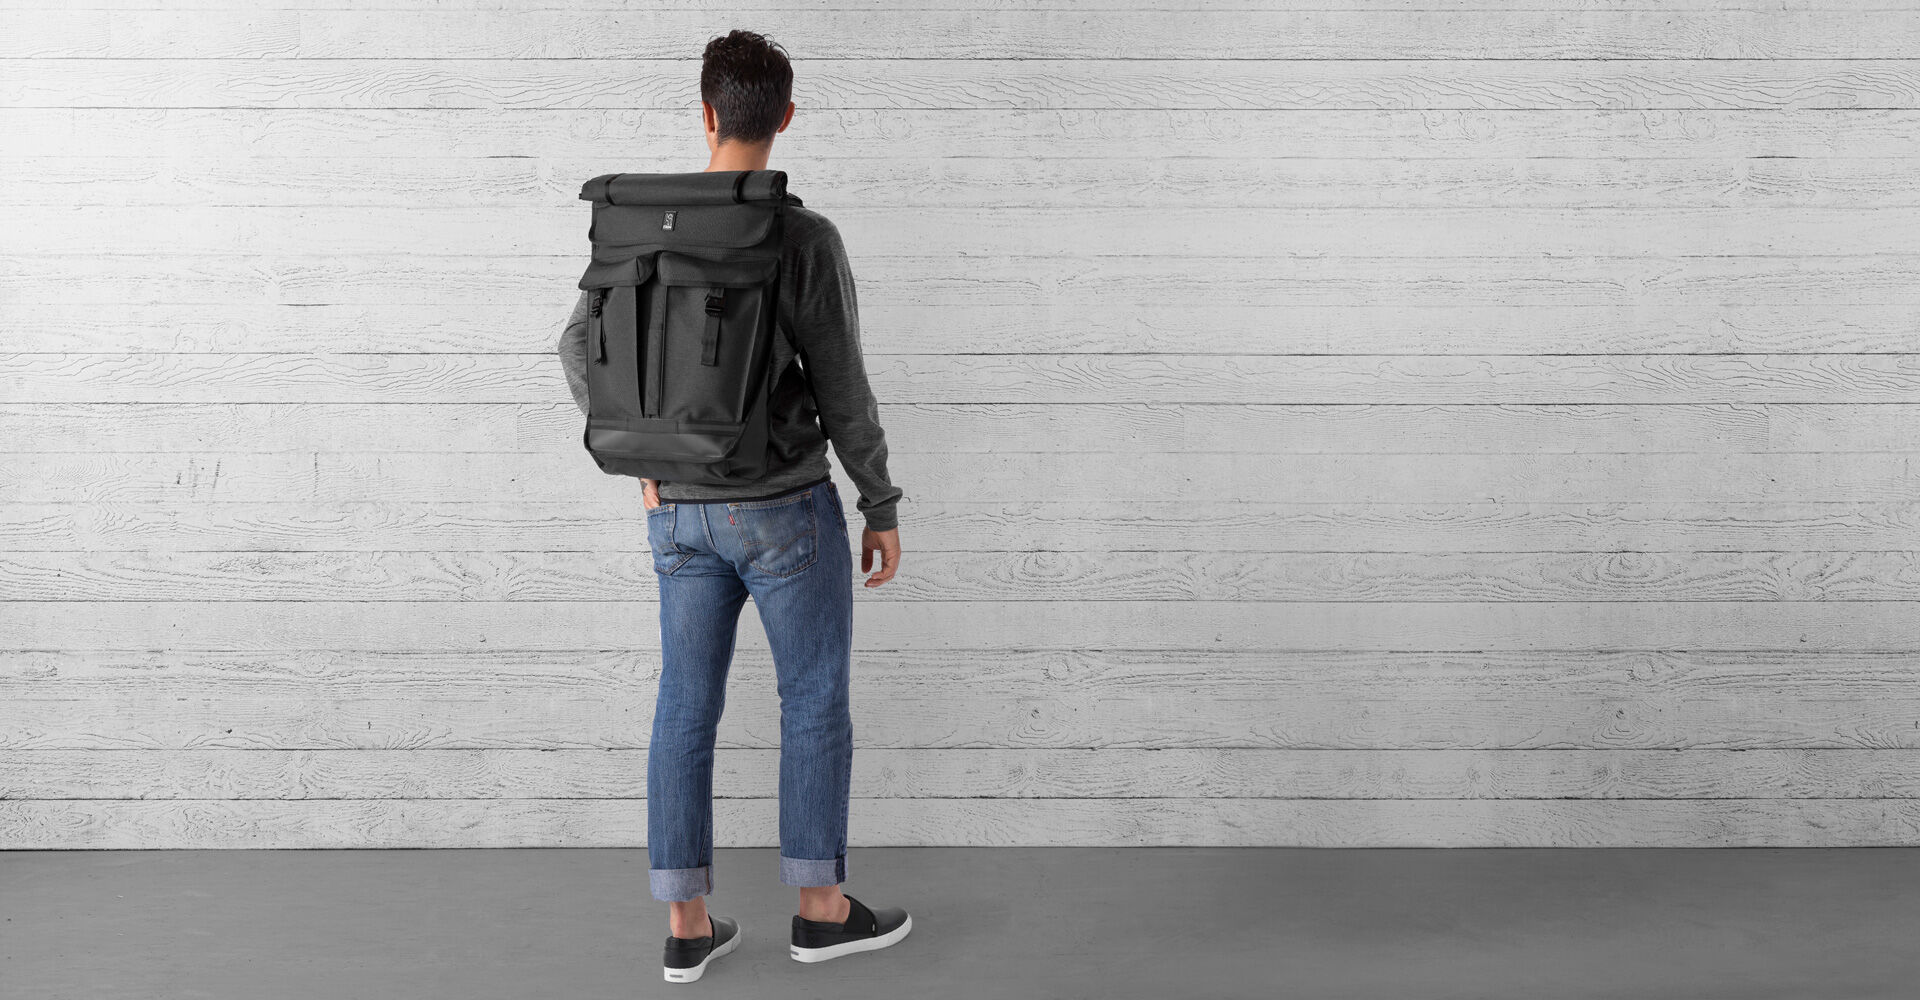 cff7da5d8ee2 Pawn 2.0 Backpack - Fits laptops up to 17